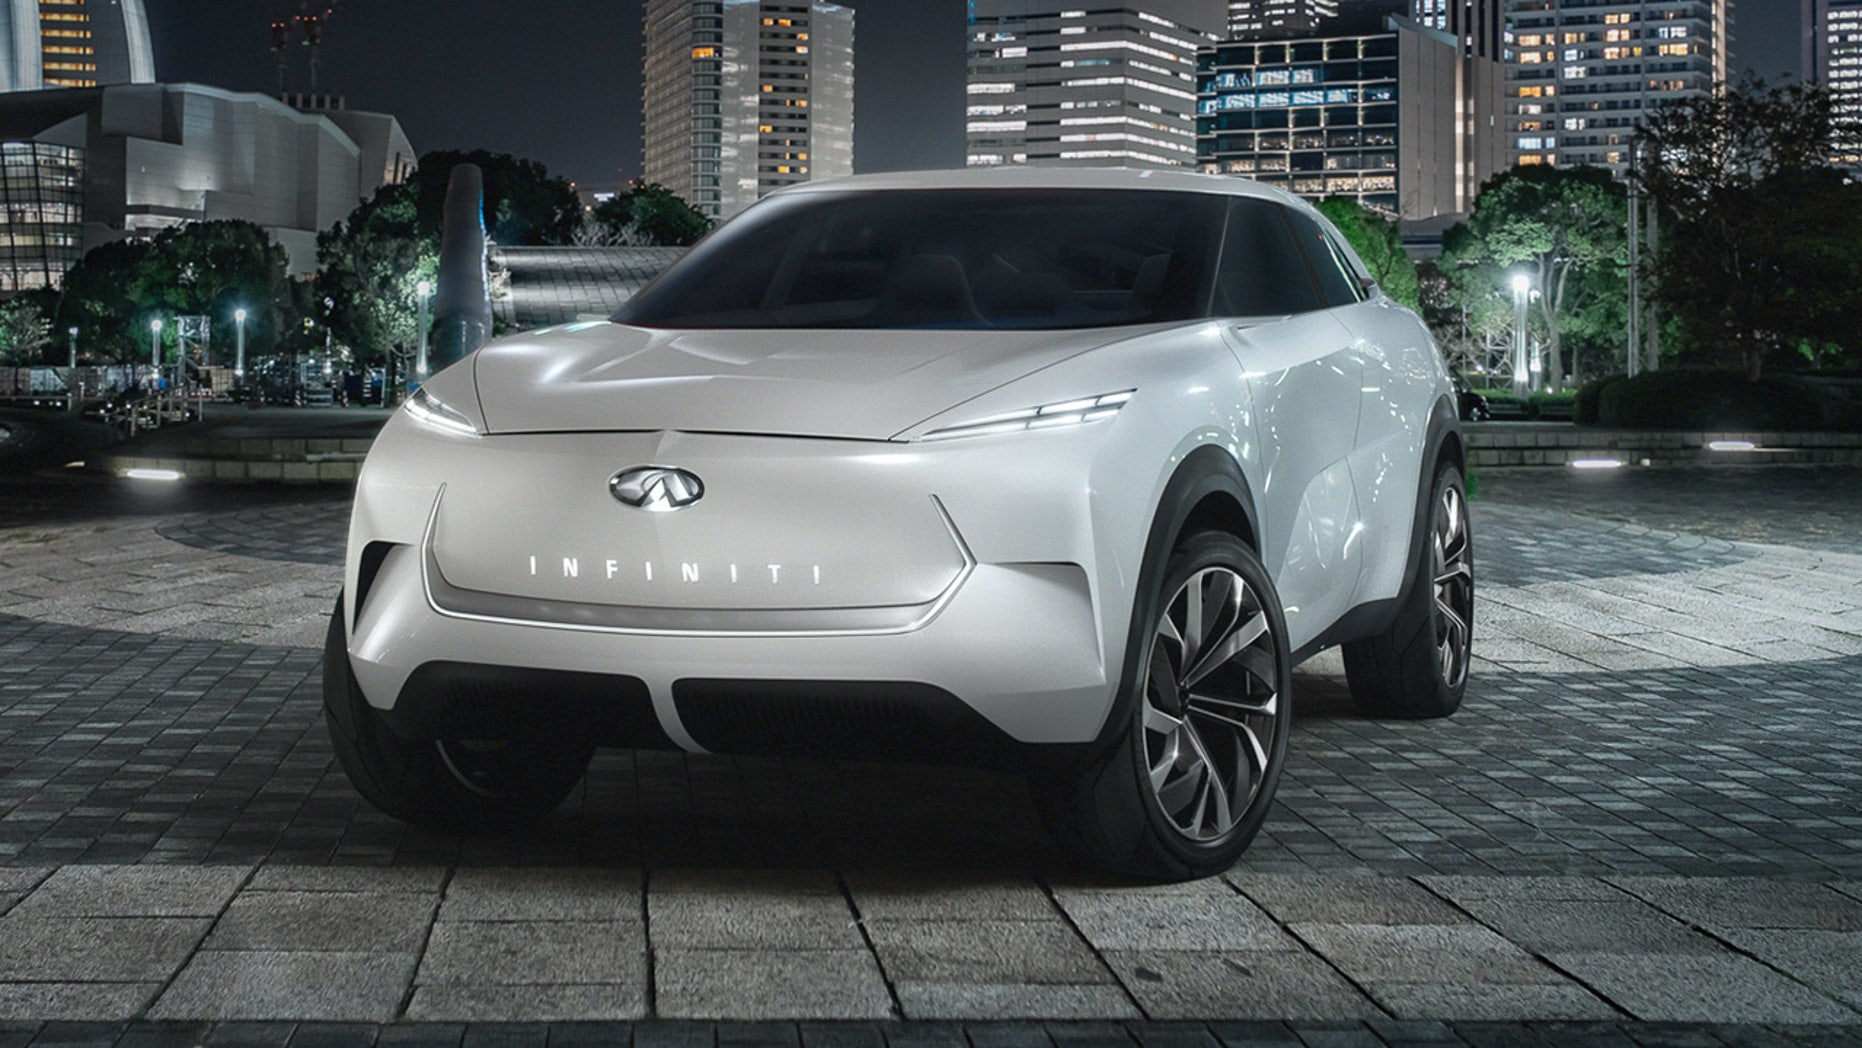 Infiniti QX Inspiration previews is upcoming Tesla-fighting electrical SUV